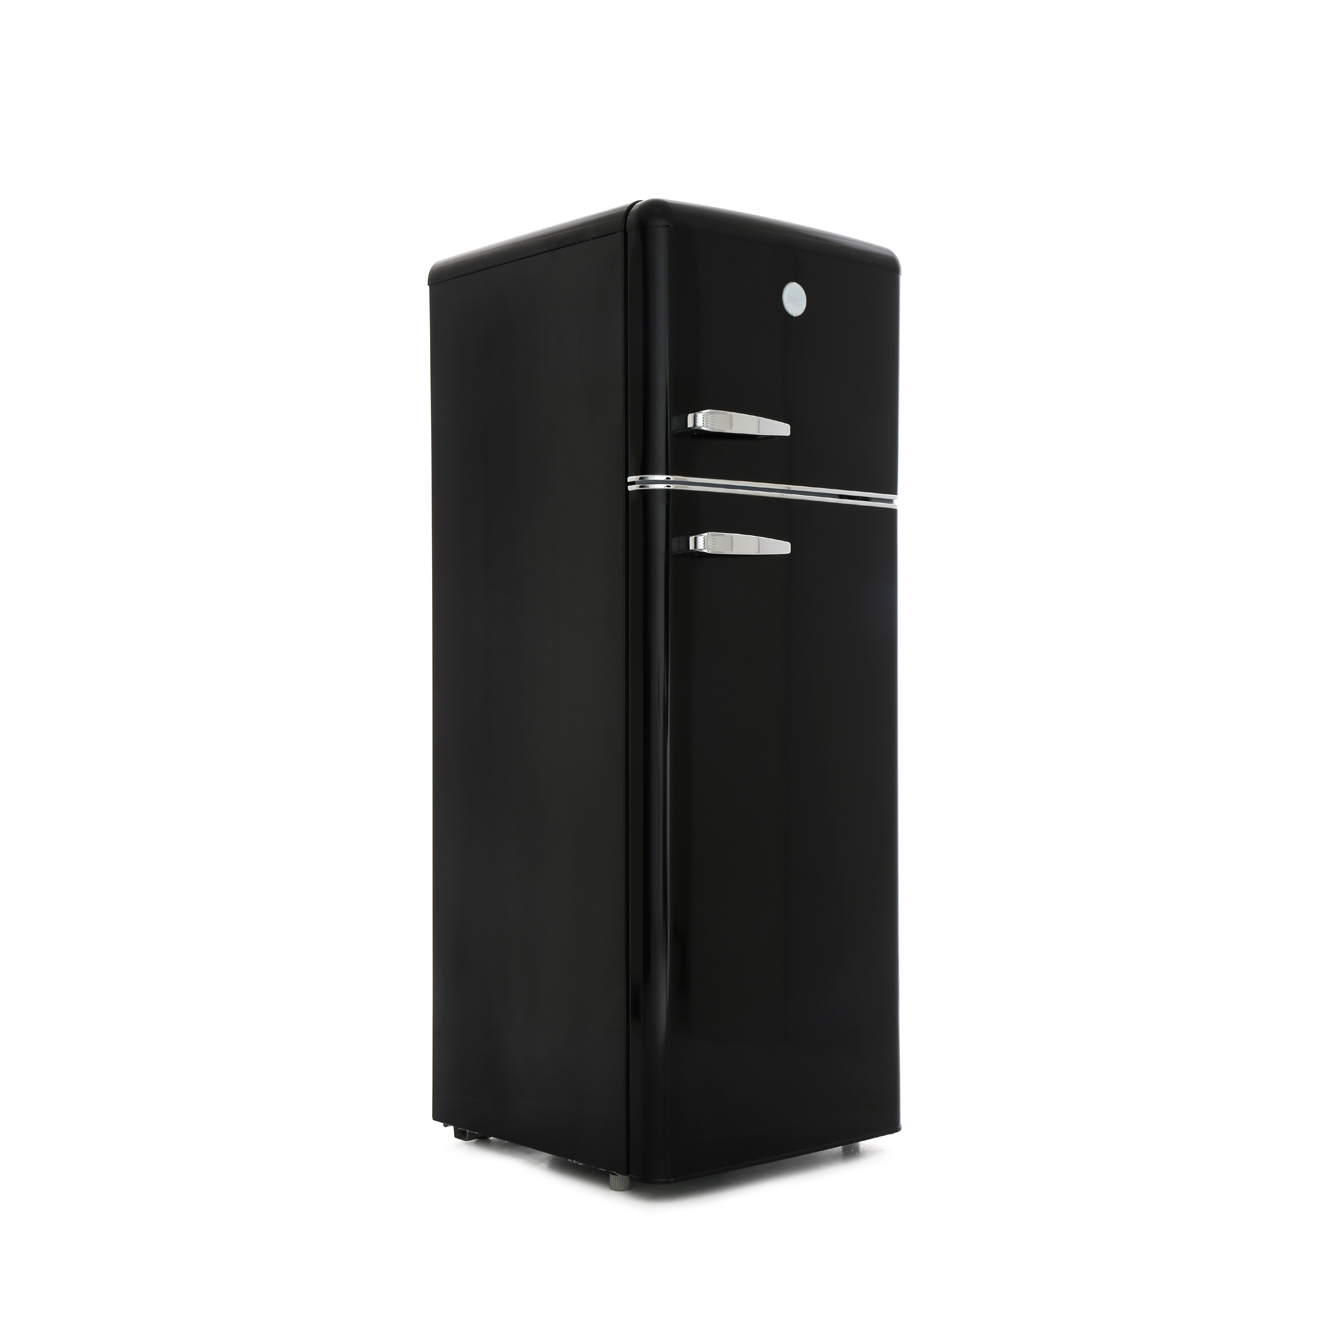 ME MEFFR213BL 50's Retro Style Fridge Freezer